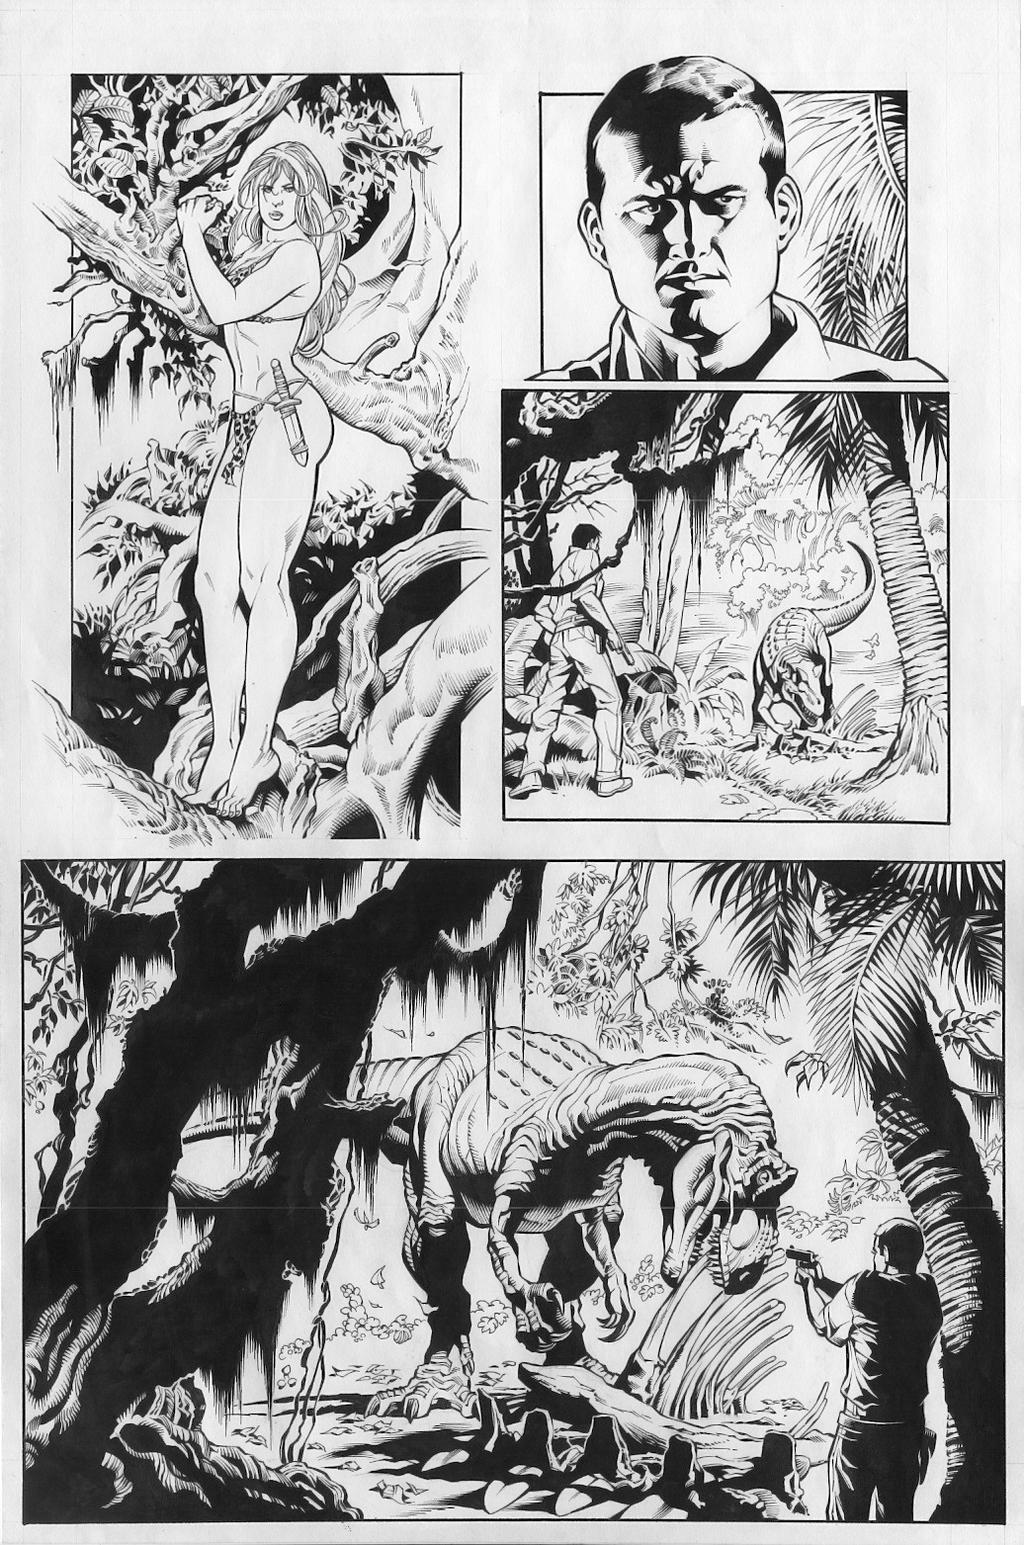 Jungle Girl is a fictional comic book character (possibly based on the Hanna-Barbera cartoon Jana of the Jungle) that appears in books published by Dynamite Entertainment.